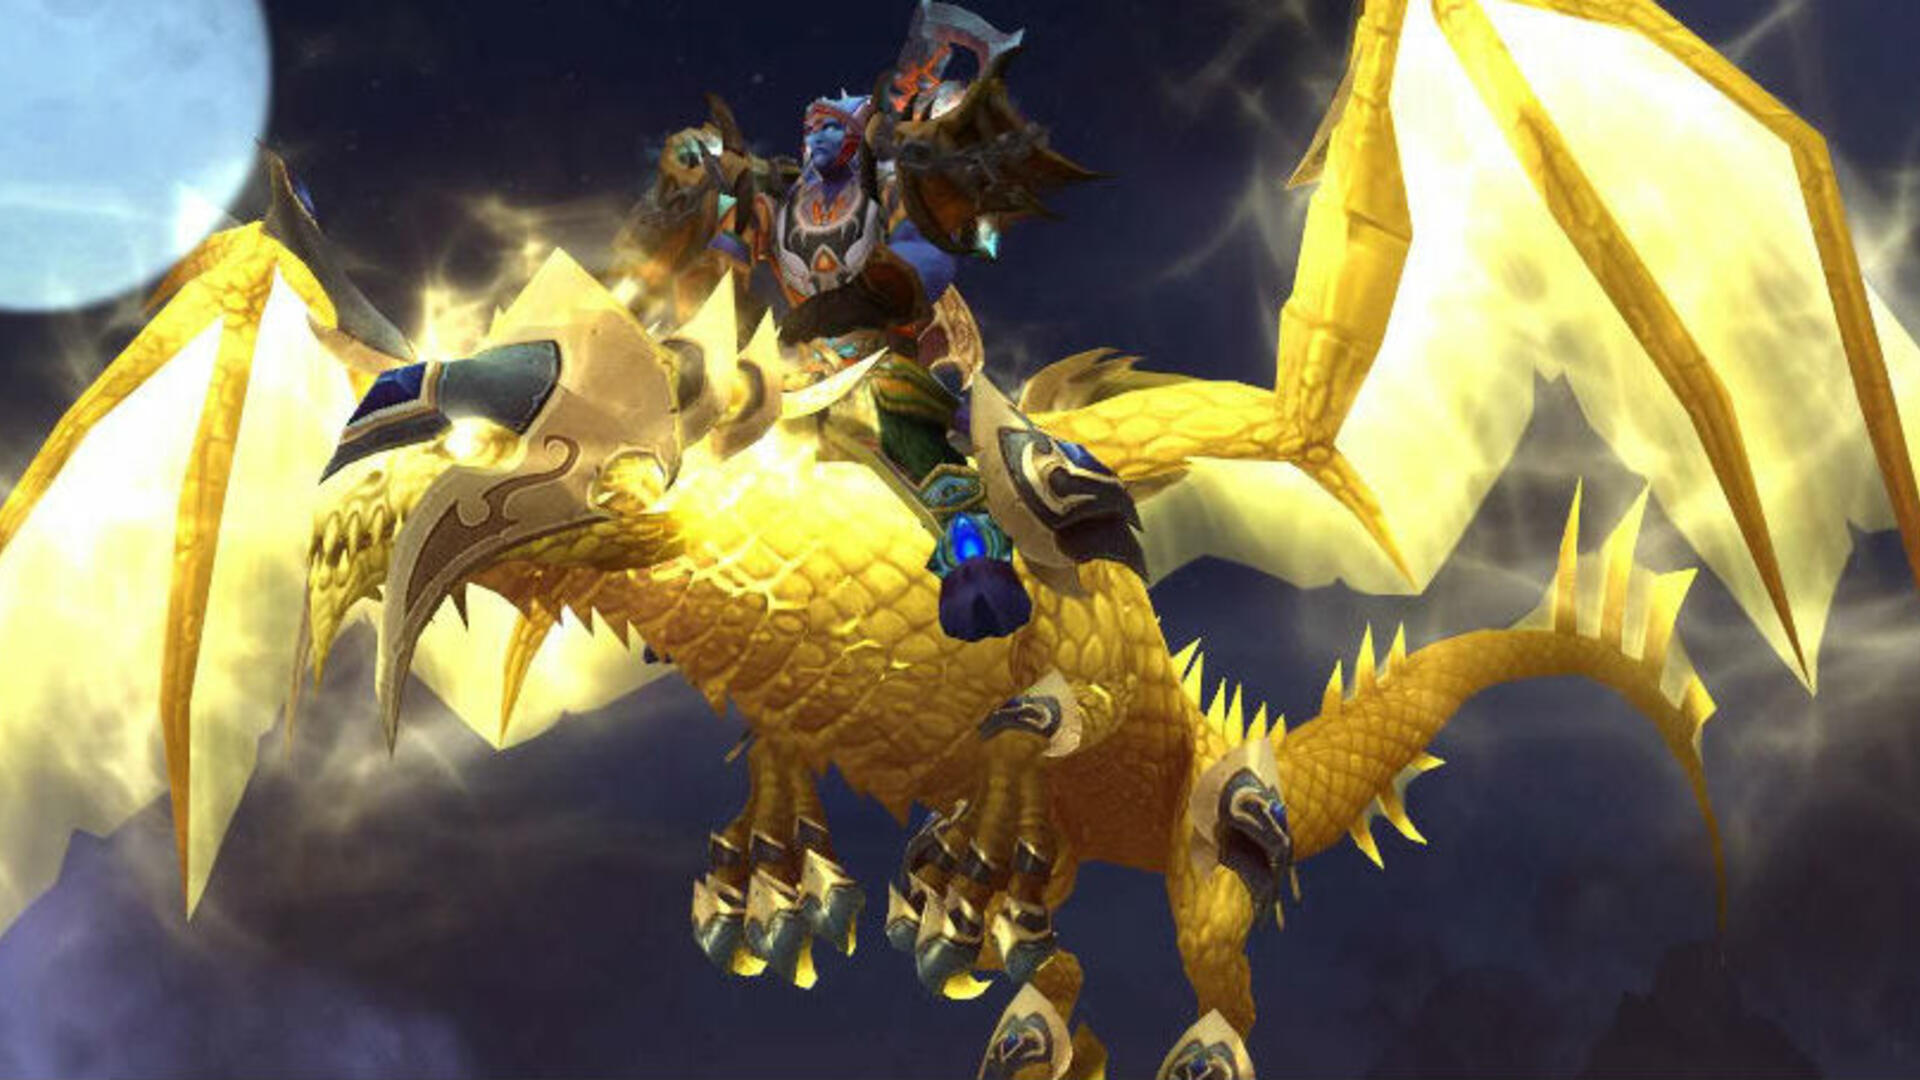 Blizzard Isn't Opposed To World of Warcraft Going Free-to-Play